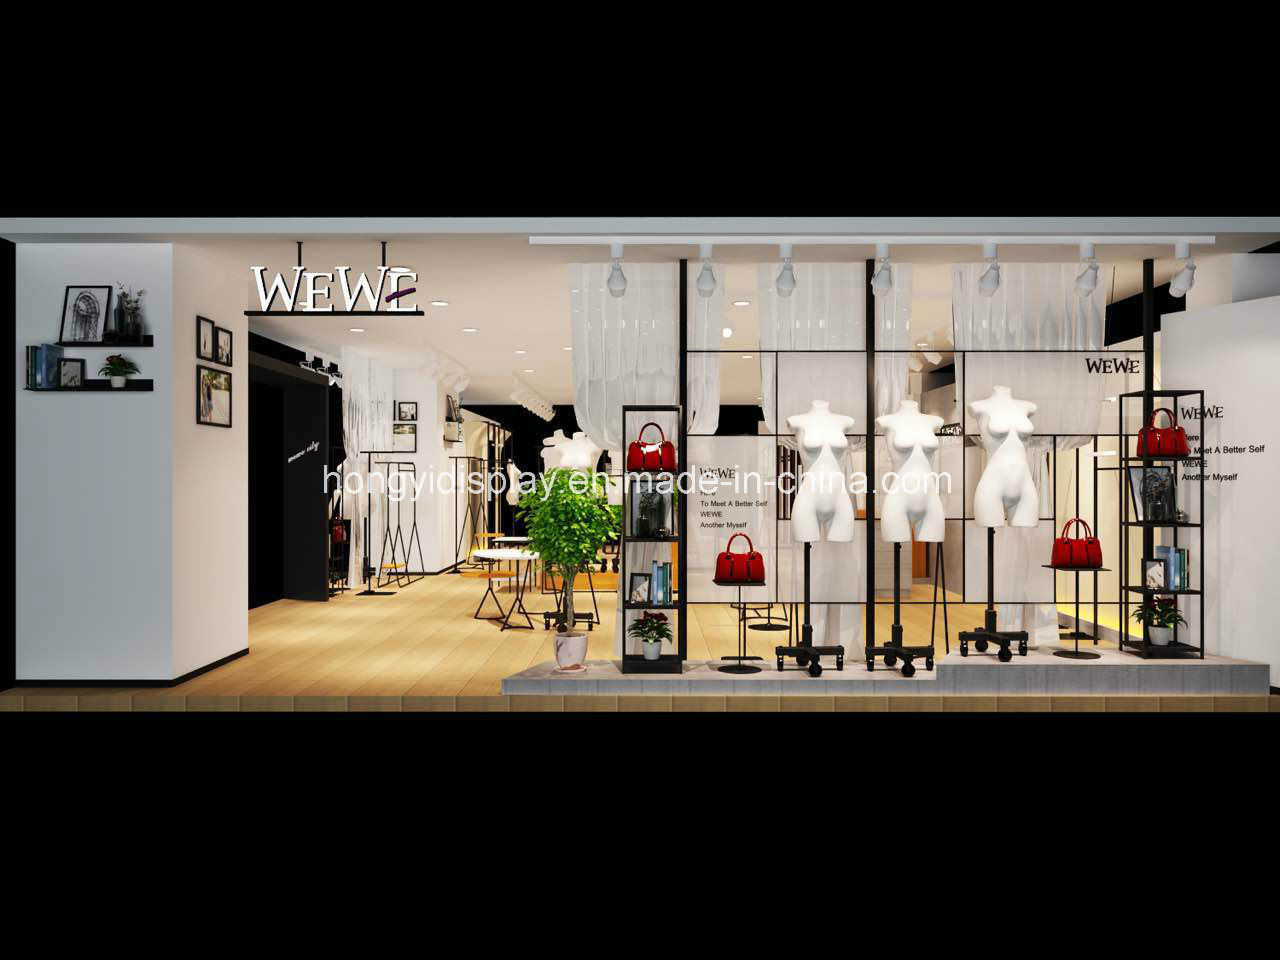 Design Clothes Shop | China Clothing Shop Interior Design For Lady Clothes Shop Photos